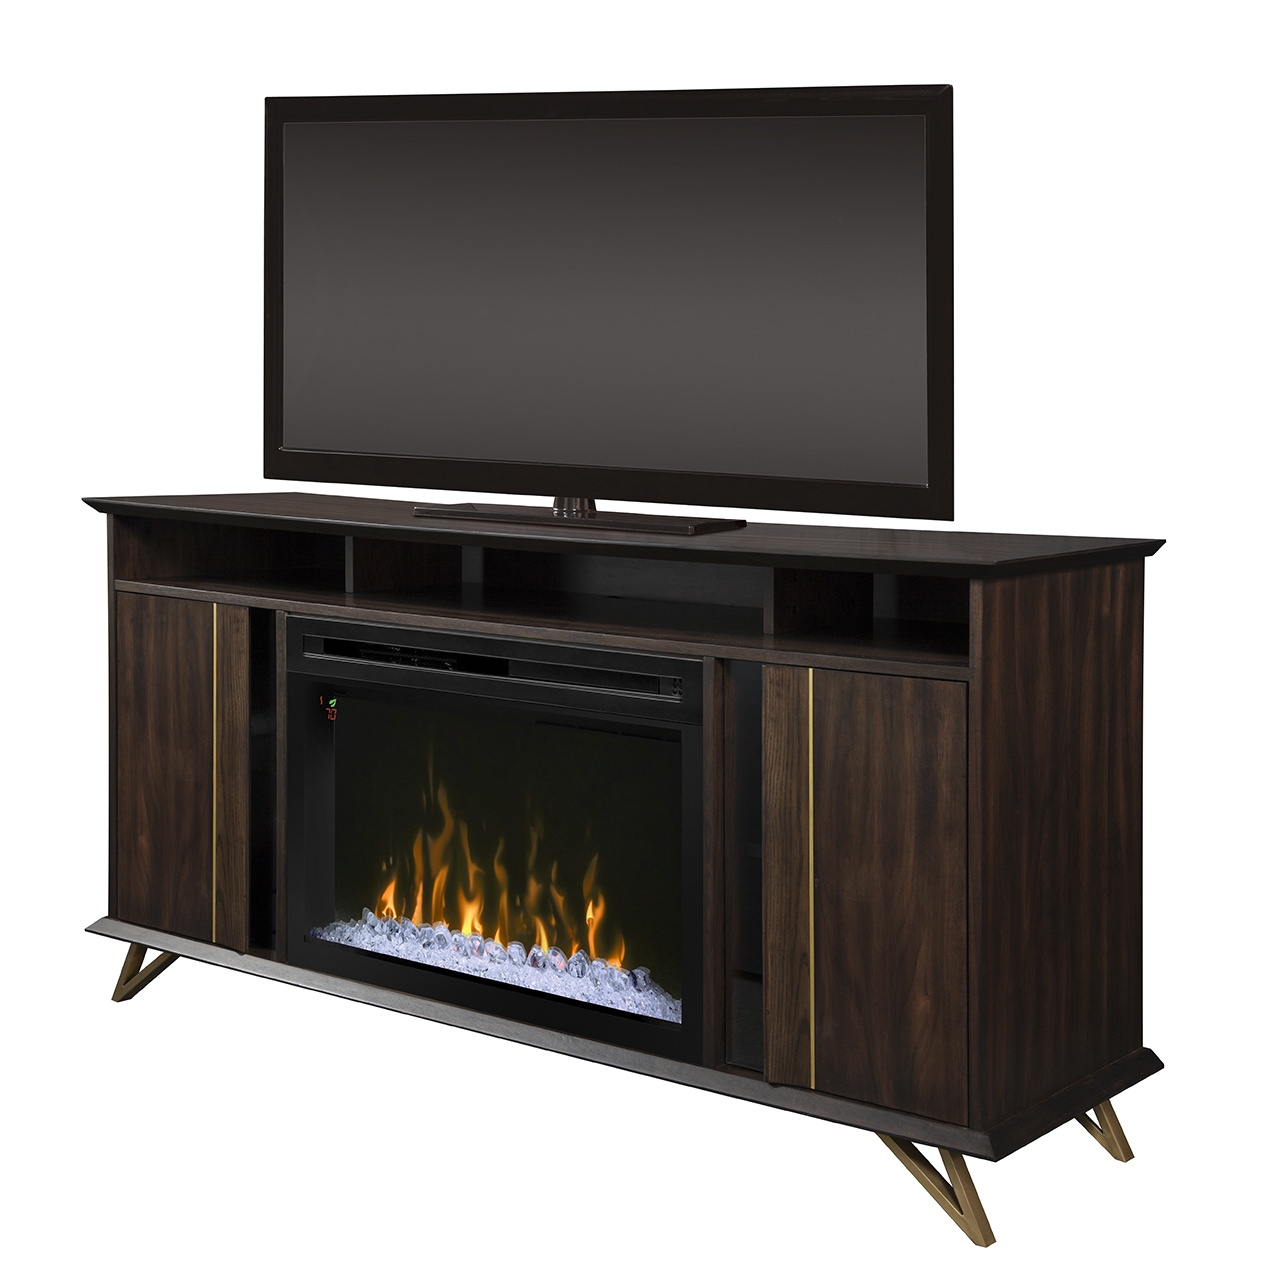 Dimplex grace gds33gd 1945ca electric fireplace with glass - Going to bed with embers in fireplace ...